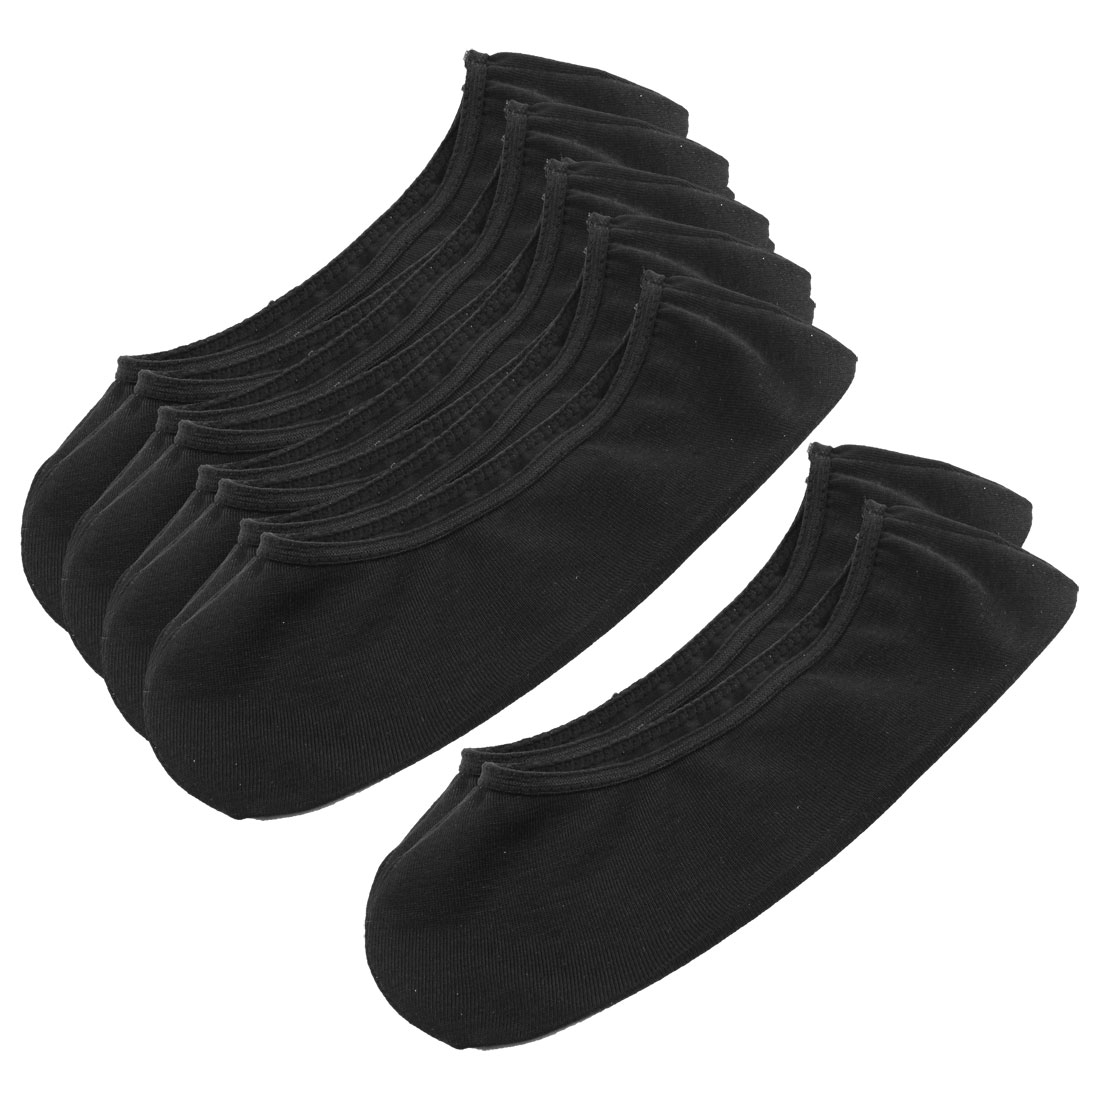 Women 5 Pairs Stretchy Low Cut Ankle Hosiery Footsie Boat Socks Black